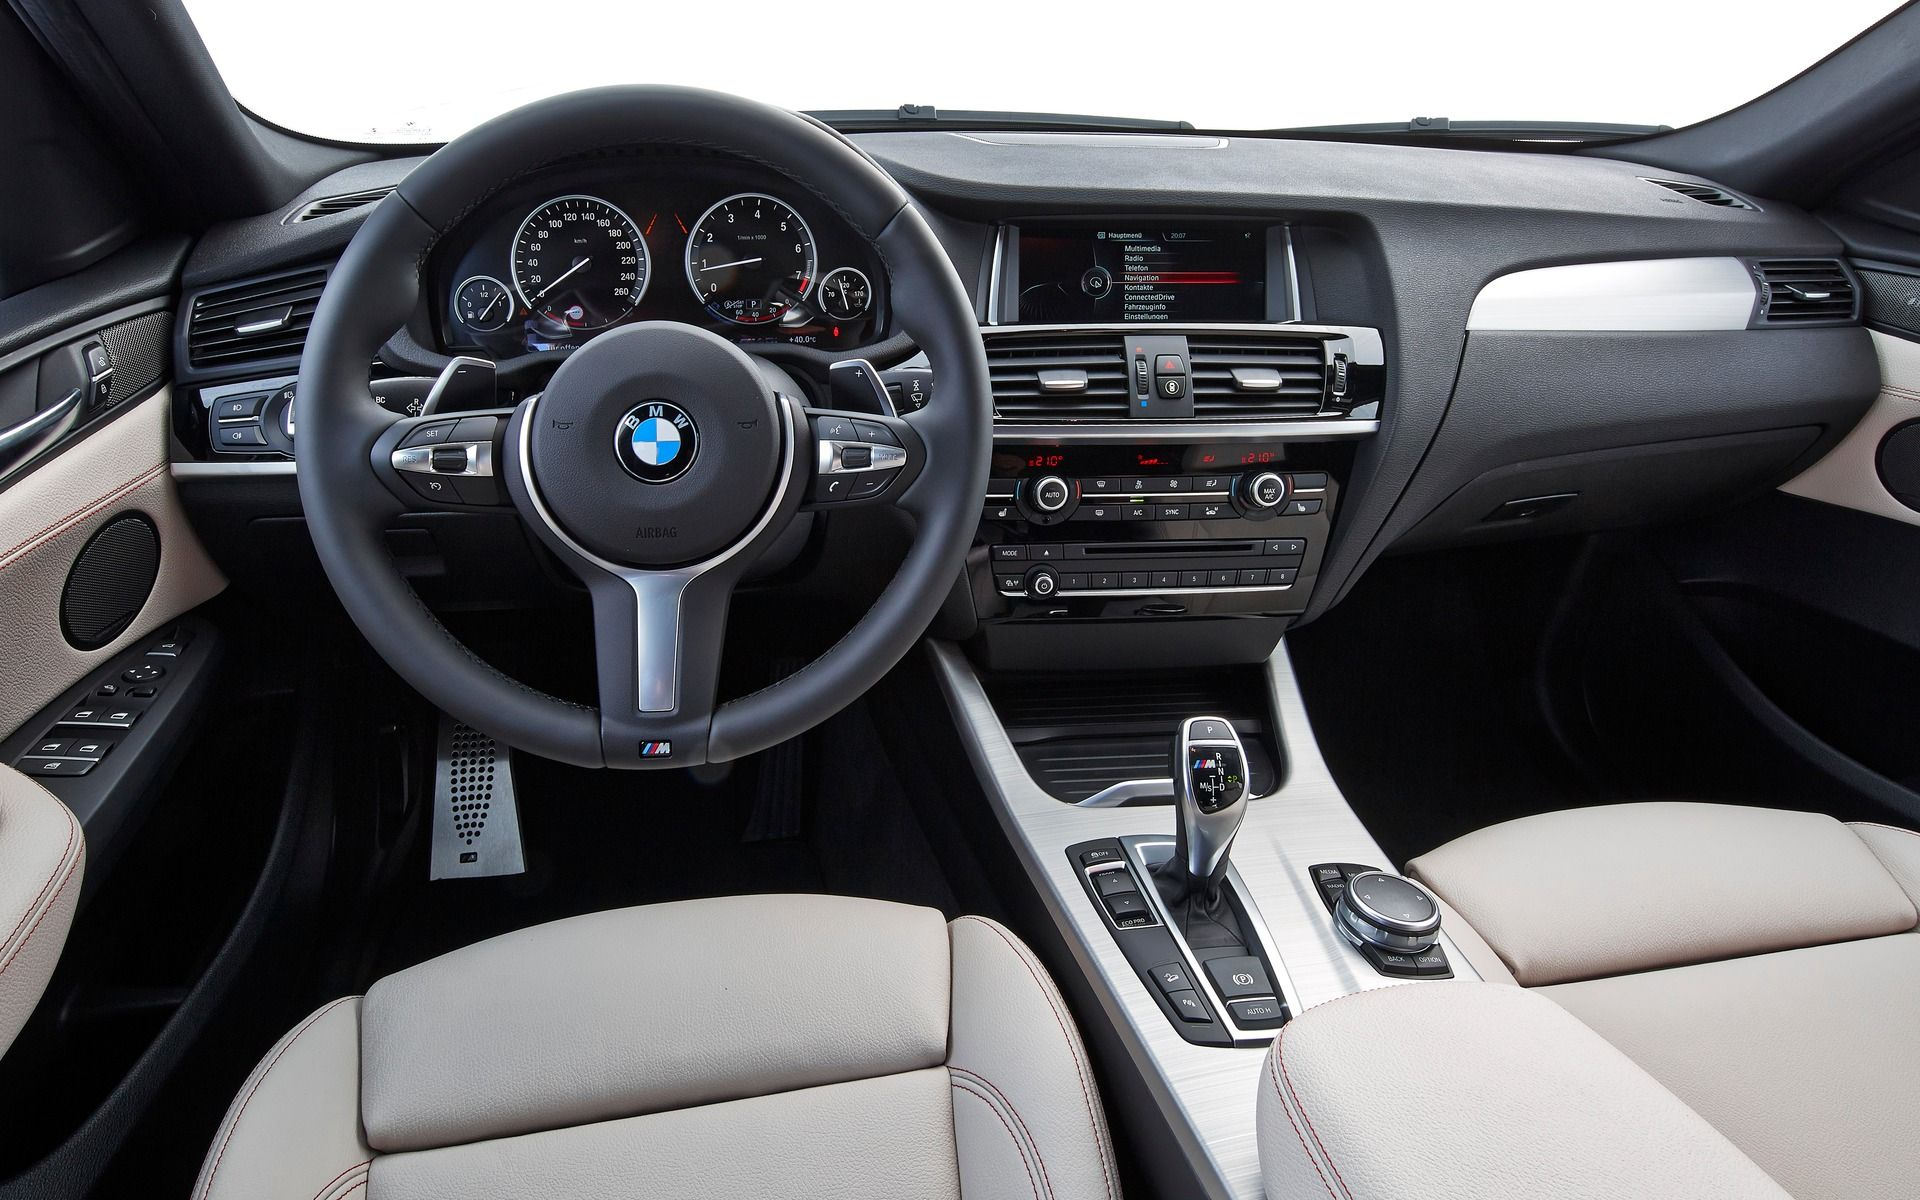 2016 Bmw X4 M40i Picture Gallery Photo 5 8 The Car Guide